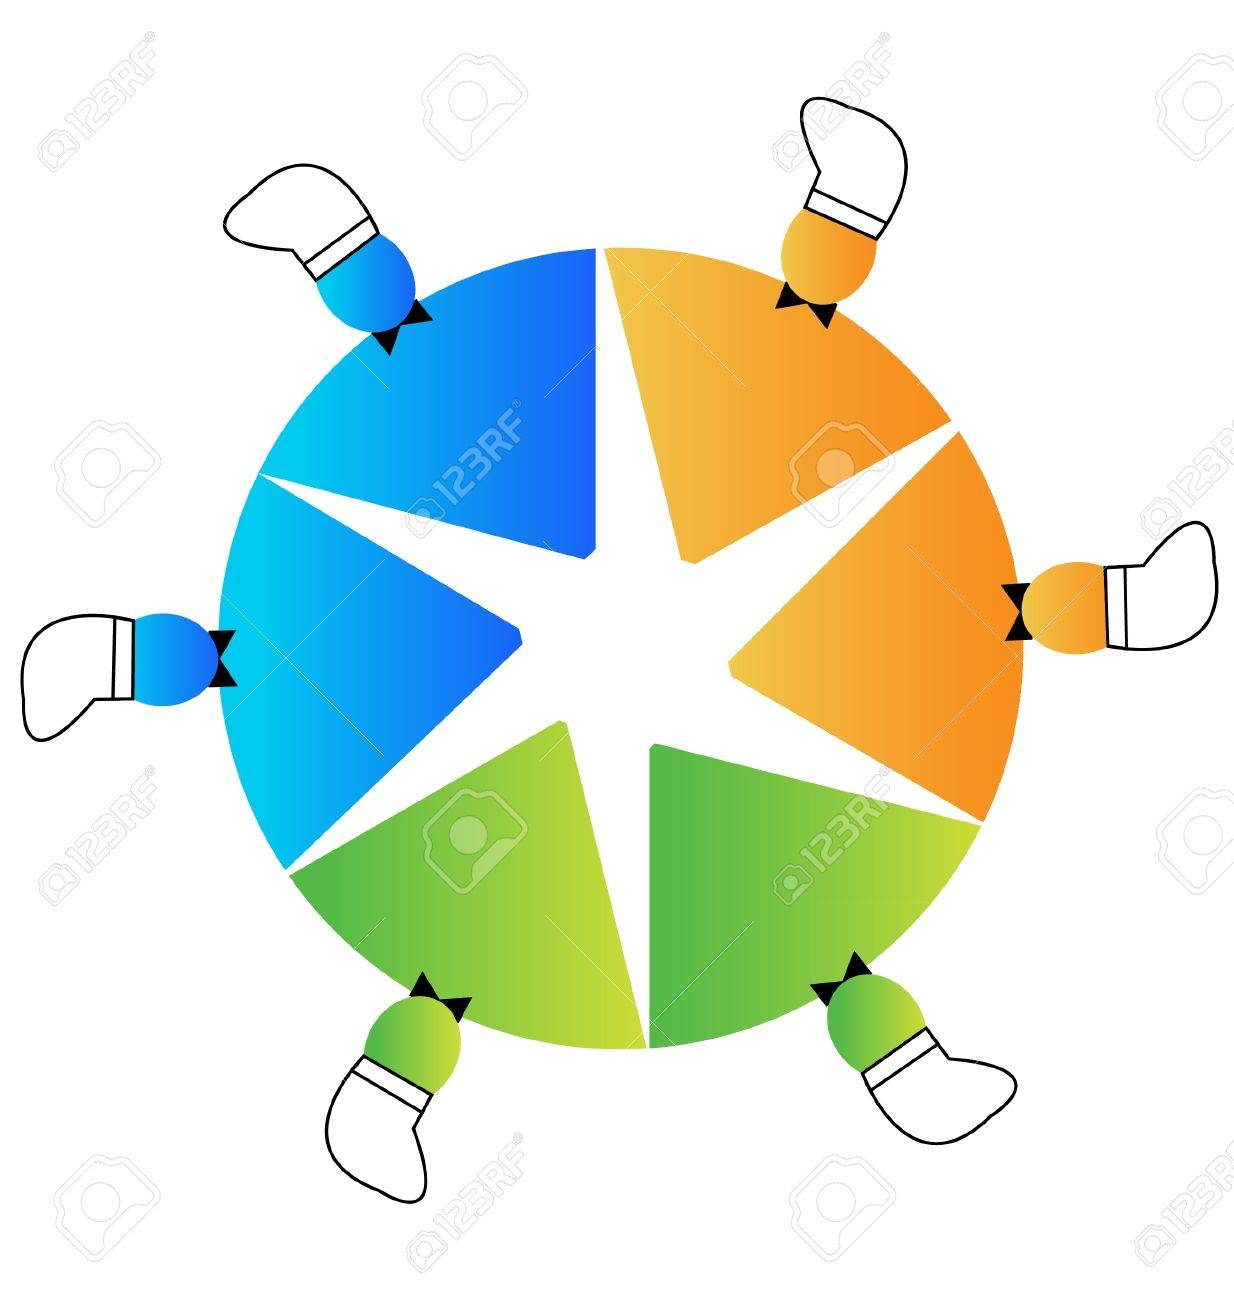 Teamwork chef hat baker Stock Vector - 13093795